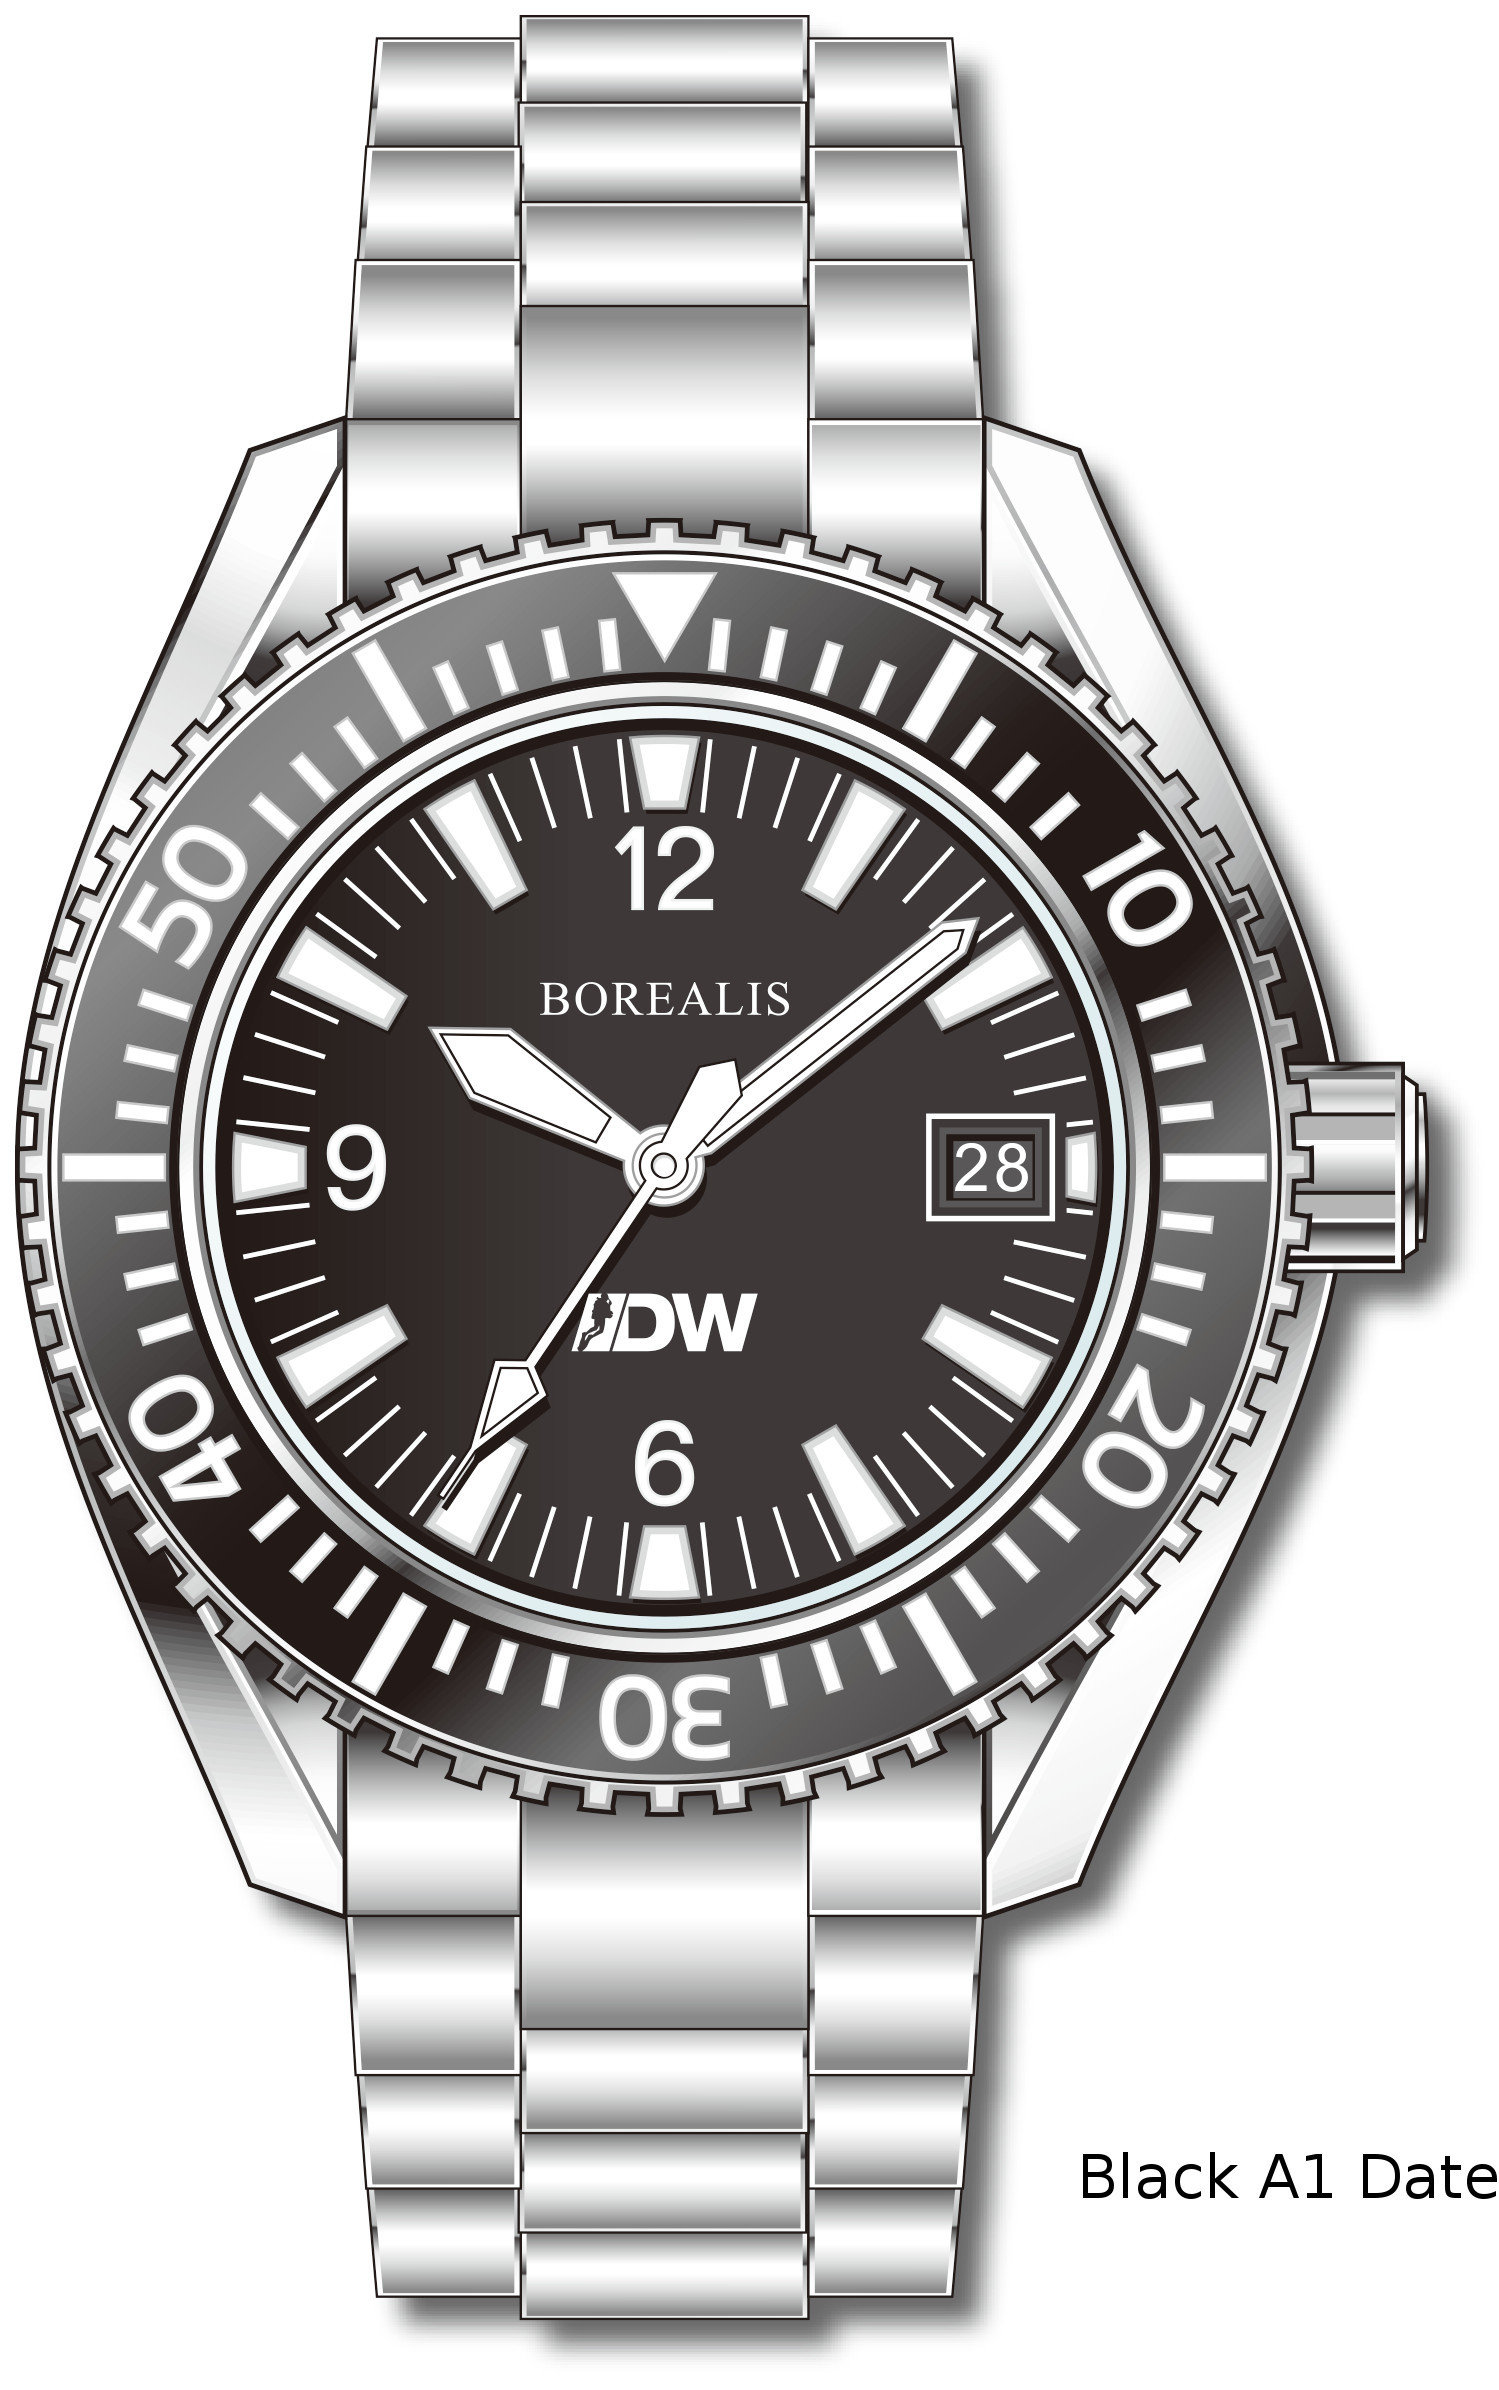 Pre-Order Borealis Estoril 300 for Diver's Watches Facebook Group Black Dial Arabic Numbers Date Black A1 Date EDWFBGBLACKA1DT